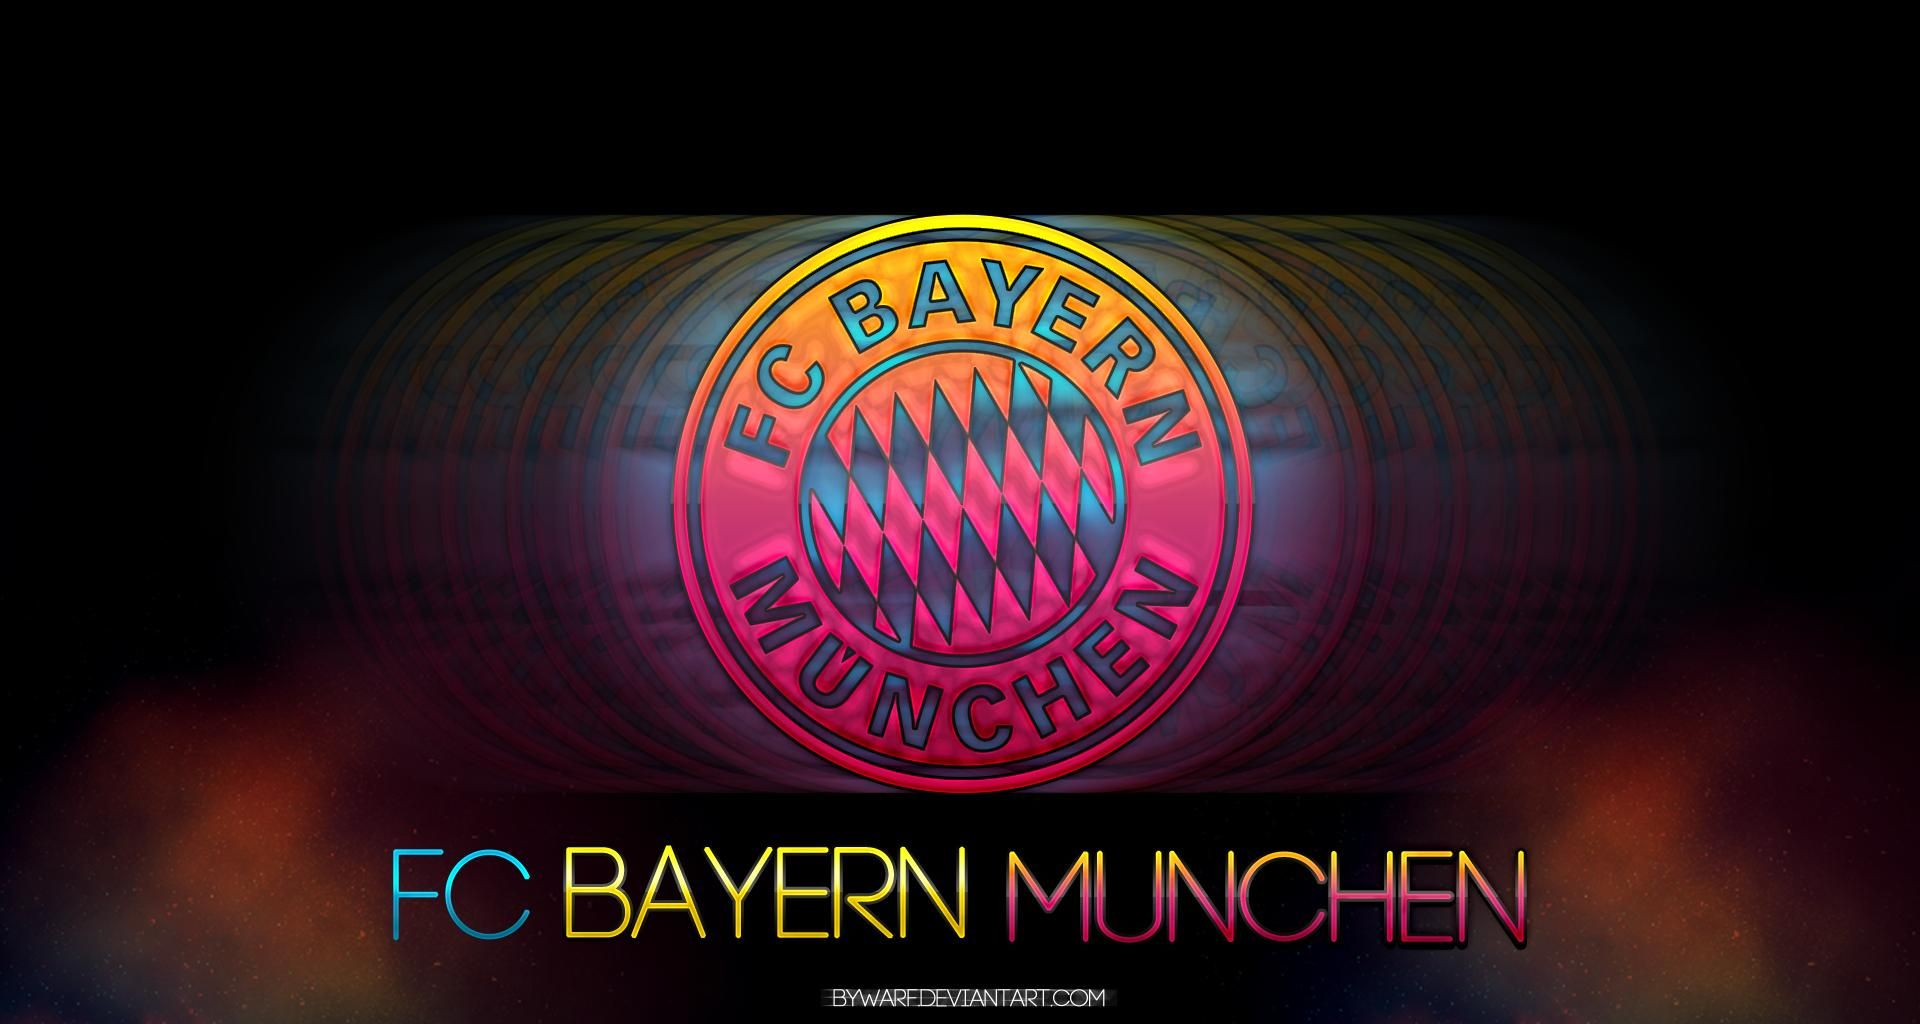 Bayern munich wallpapers wallpaper cave all wallpapers bayern munich wallpapers wallpaper cave voltagebd Image collections